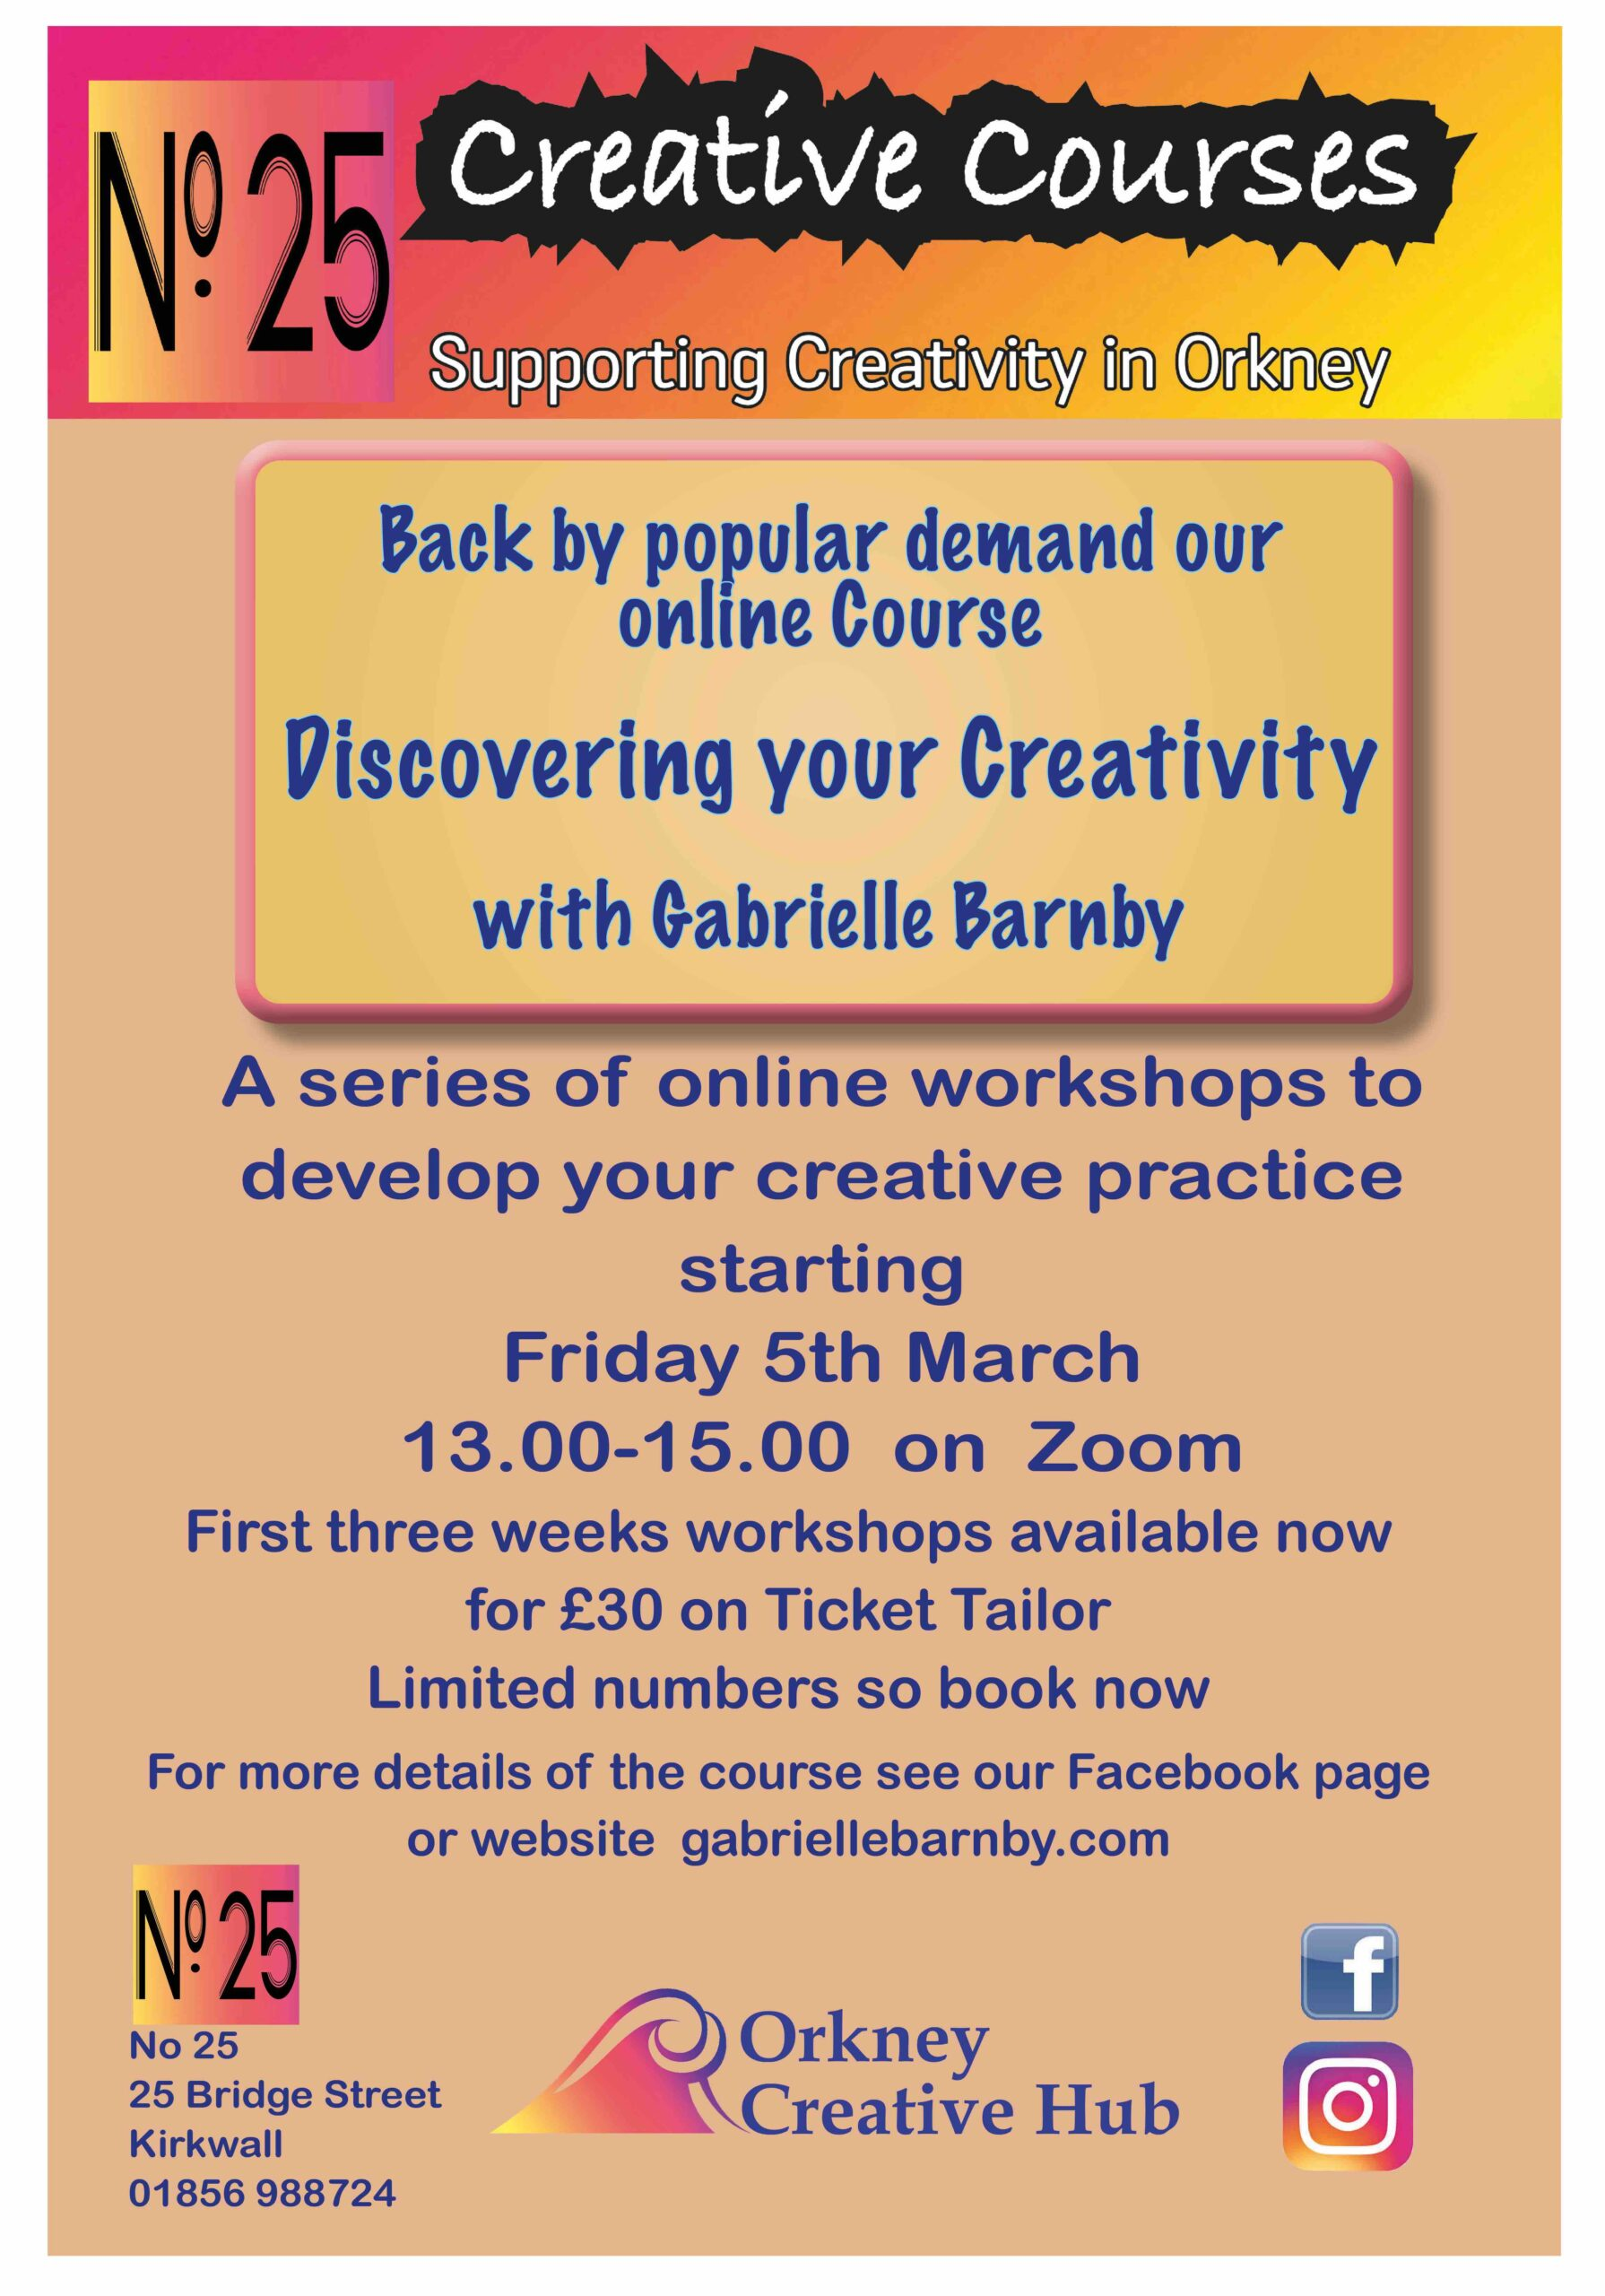 Discovering Creativity, Gabrielle Barnby, Orkney